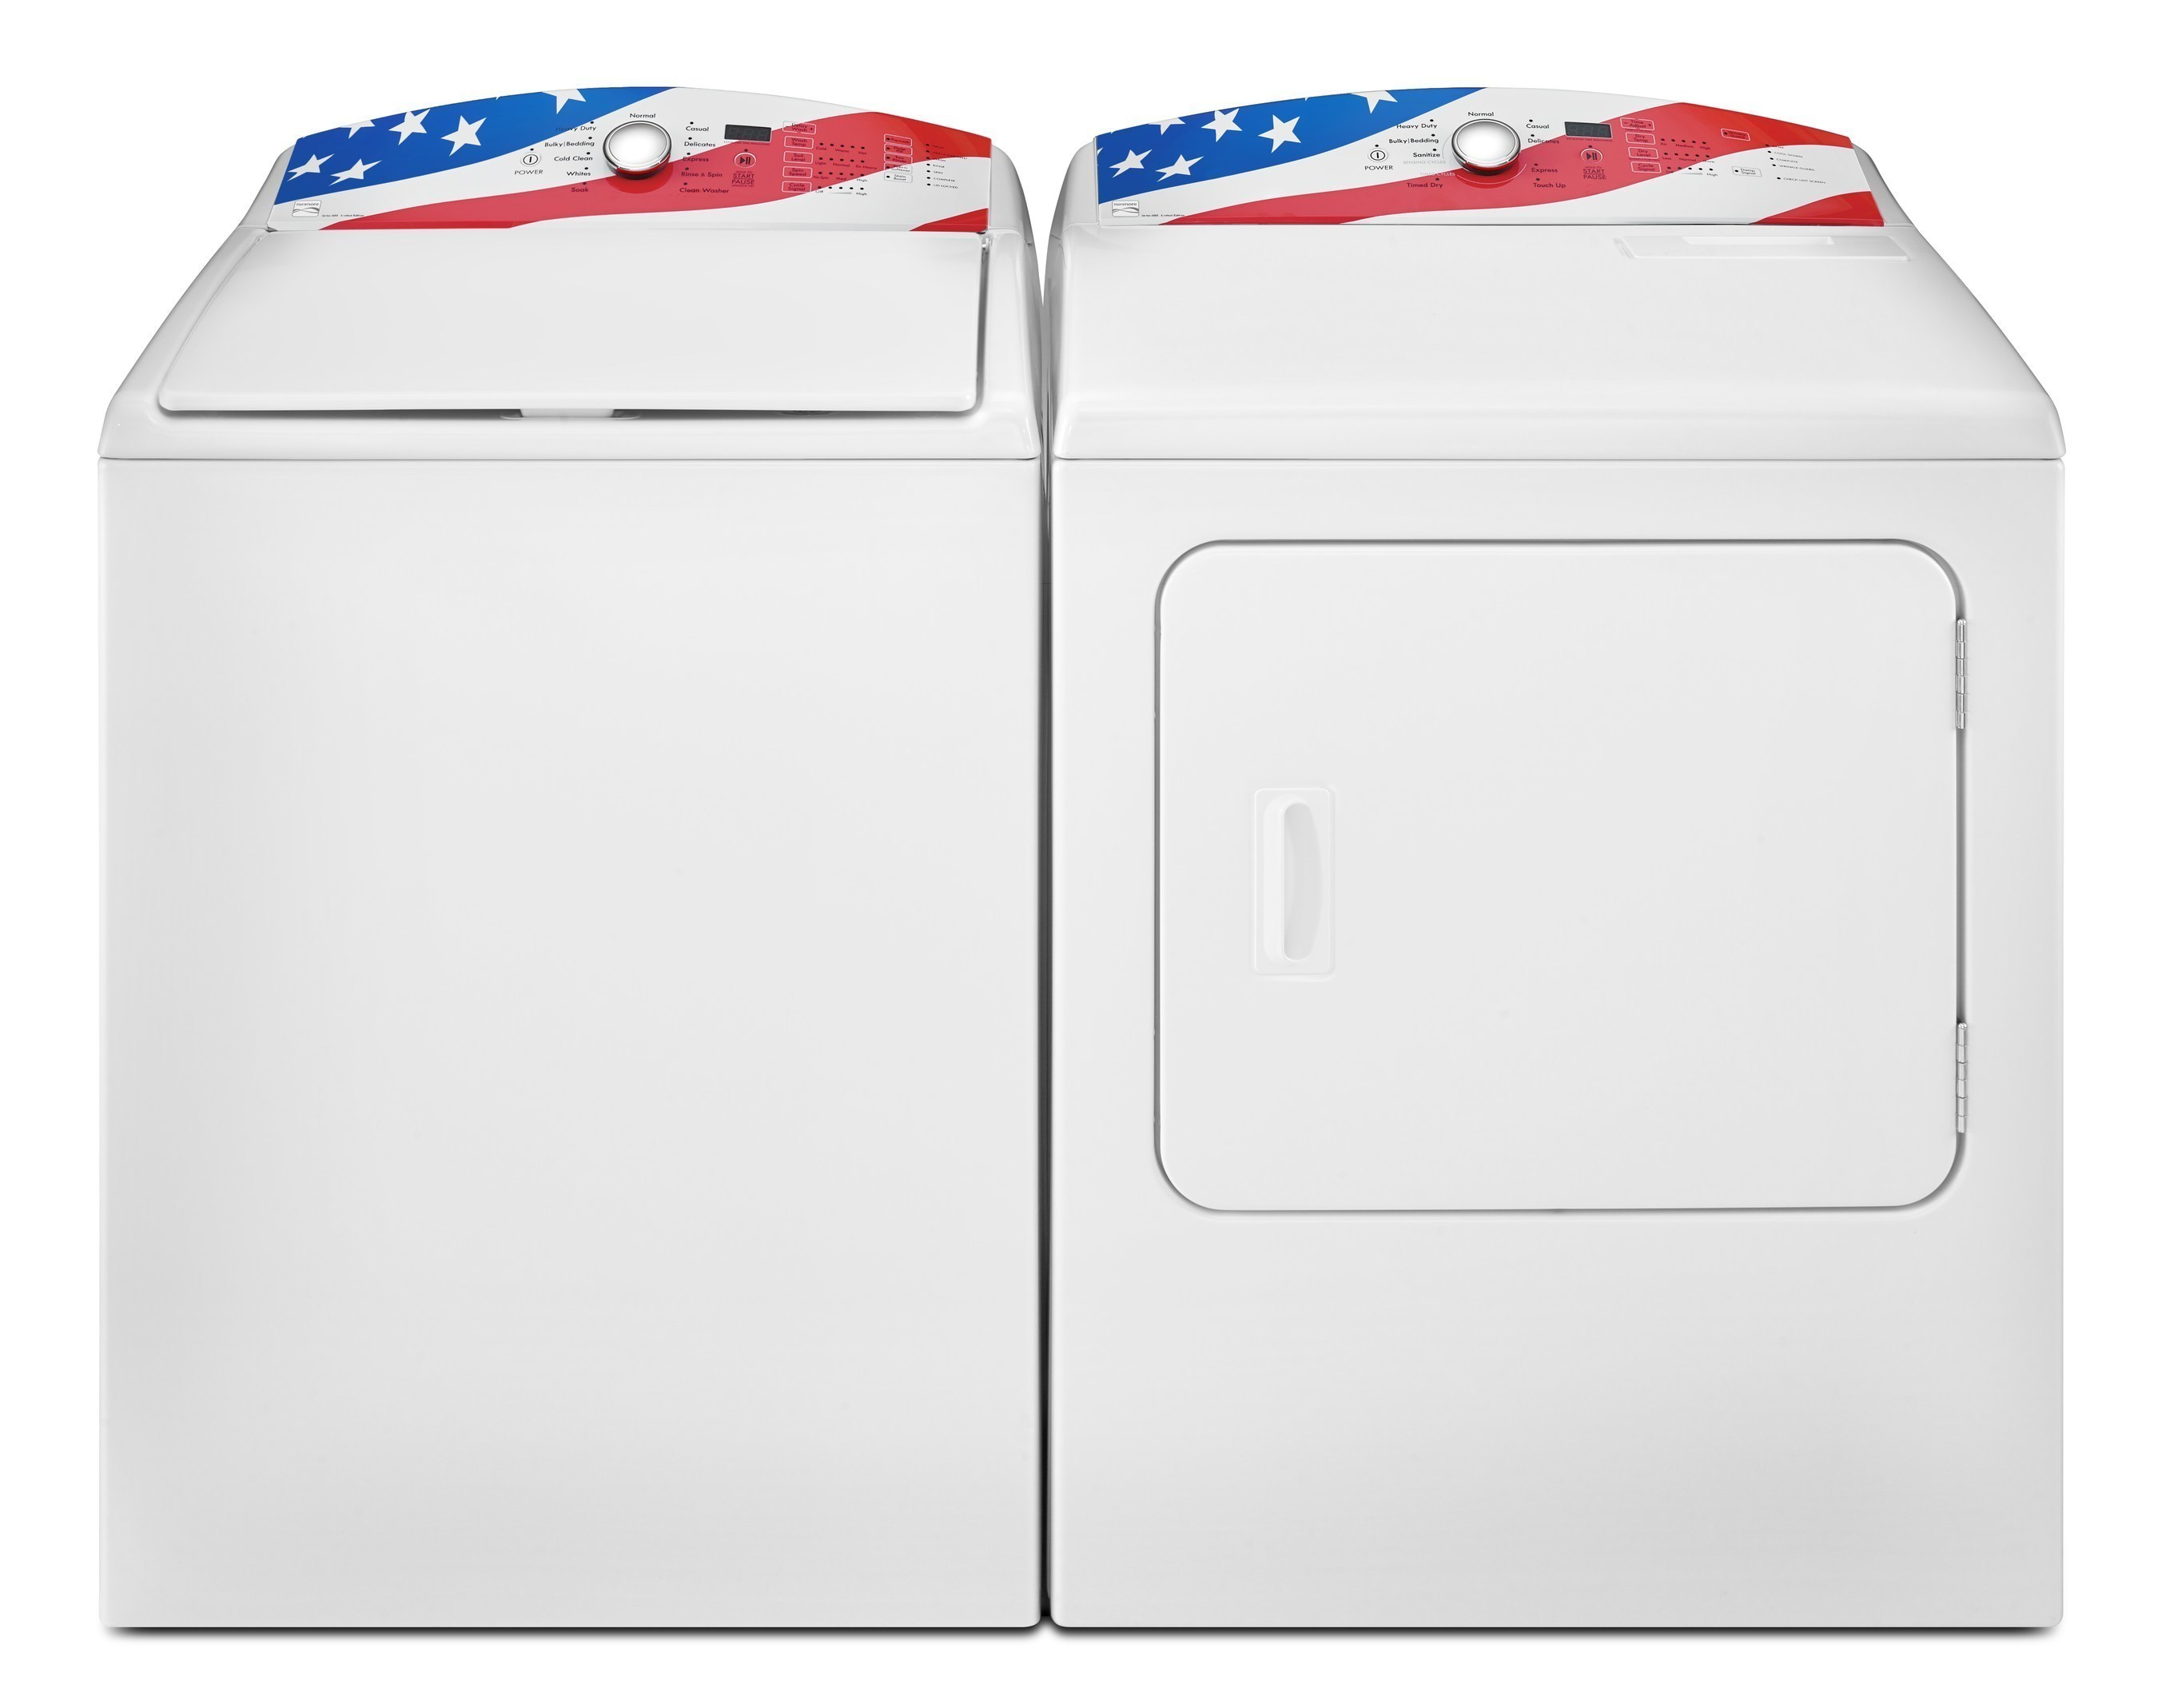 The Kenmore® Brand To Donate Up To $200,000 To Aid Veterans With